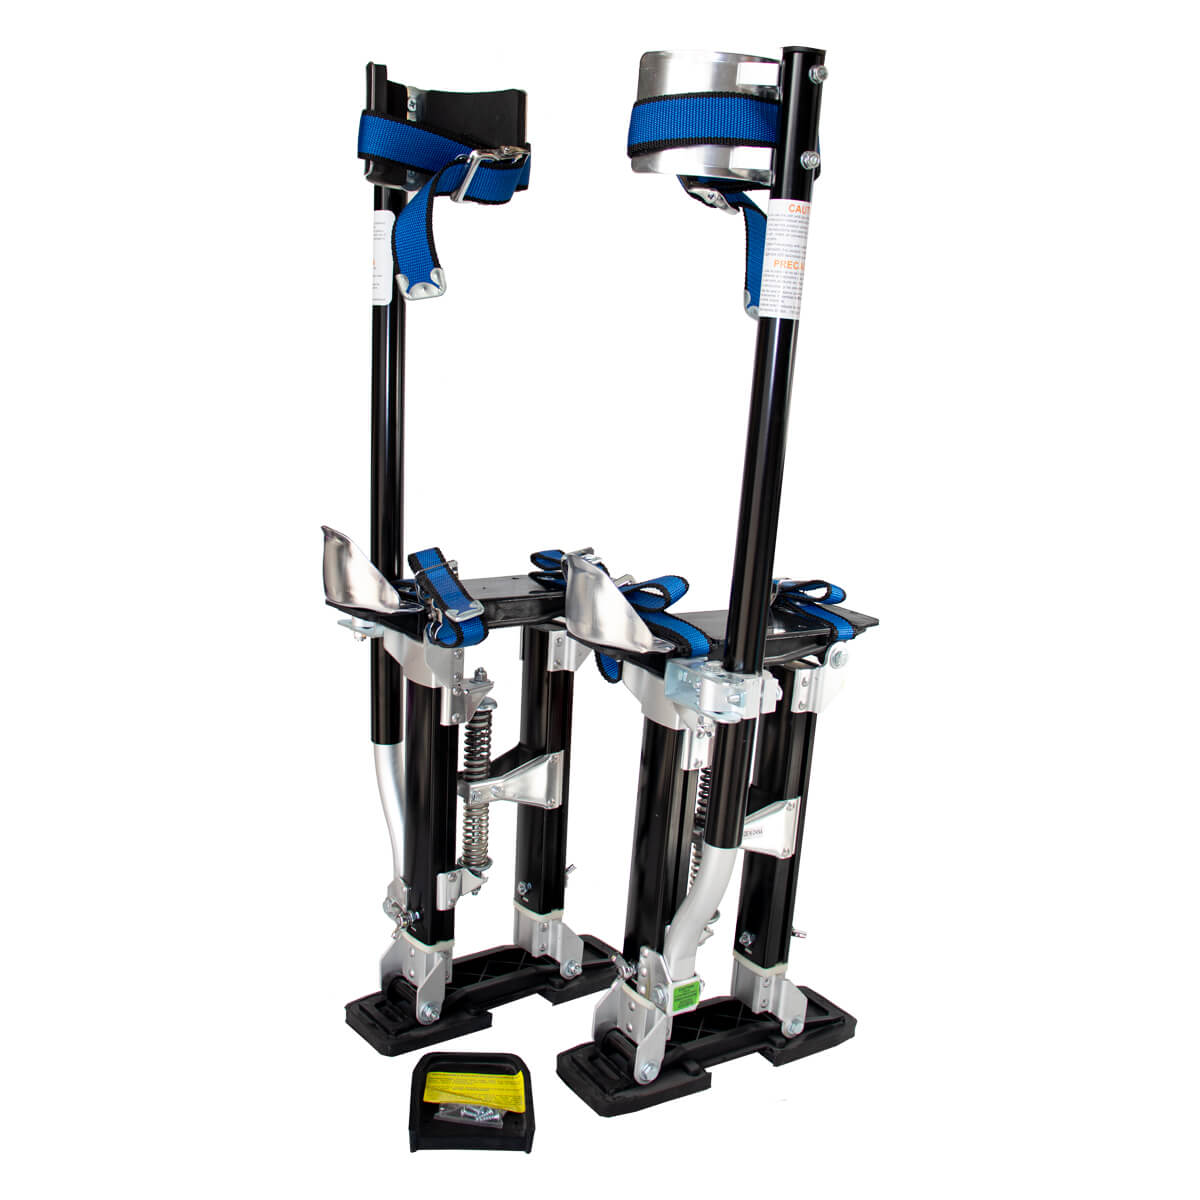 Stilts Adjustable Small 375-575mm